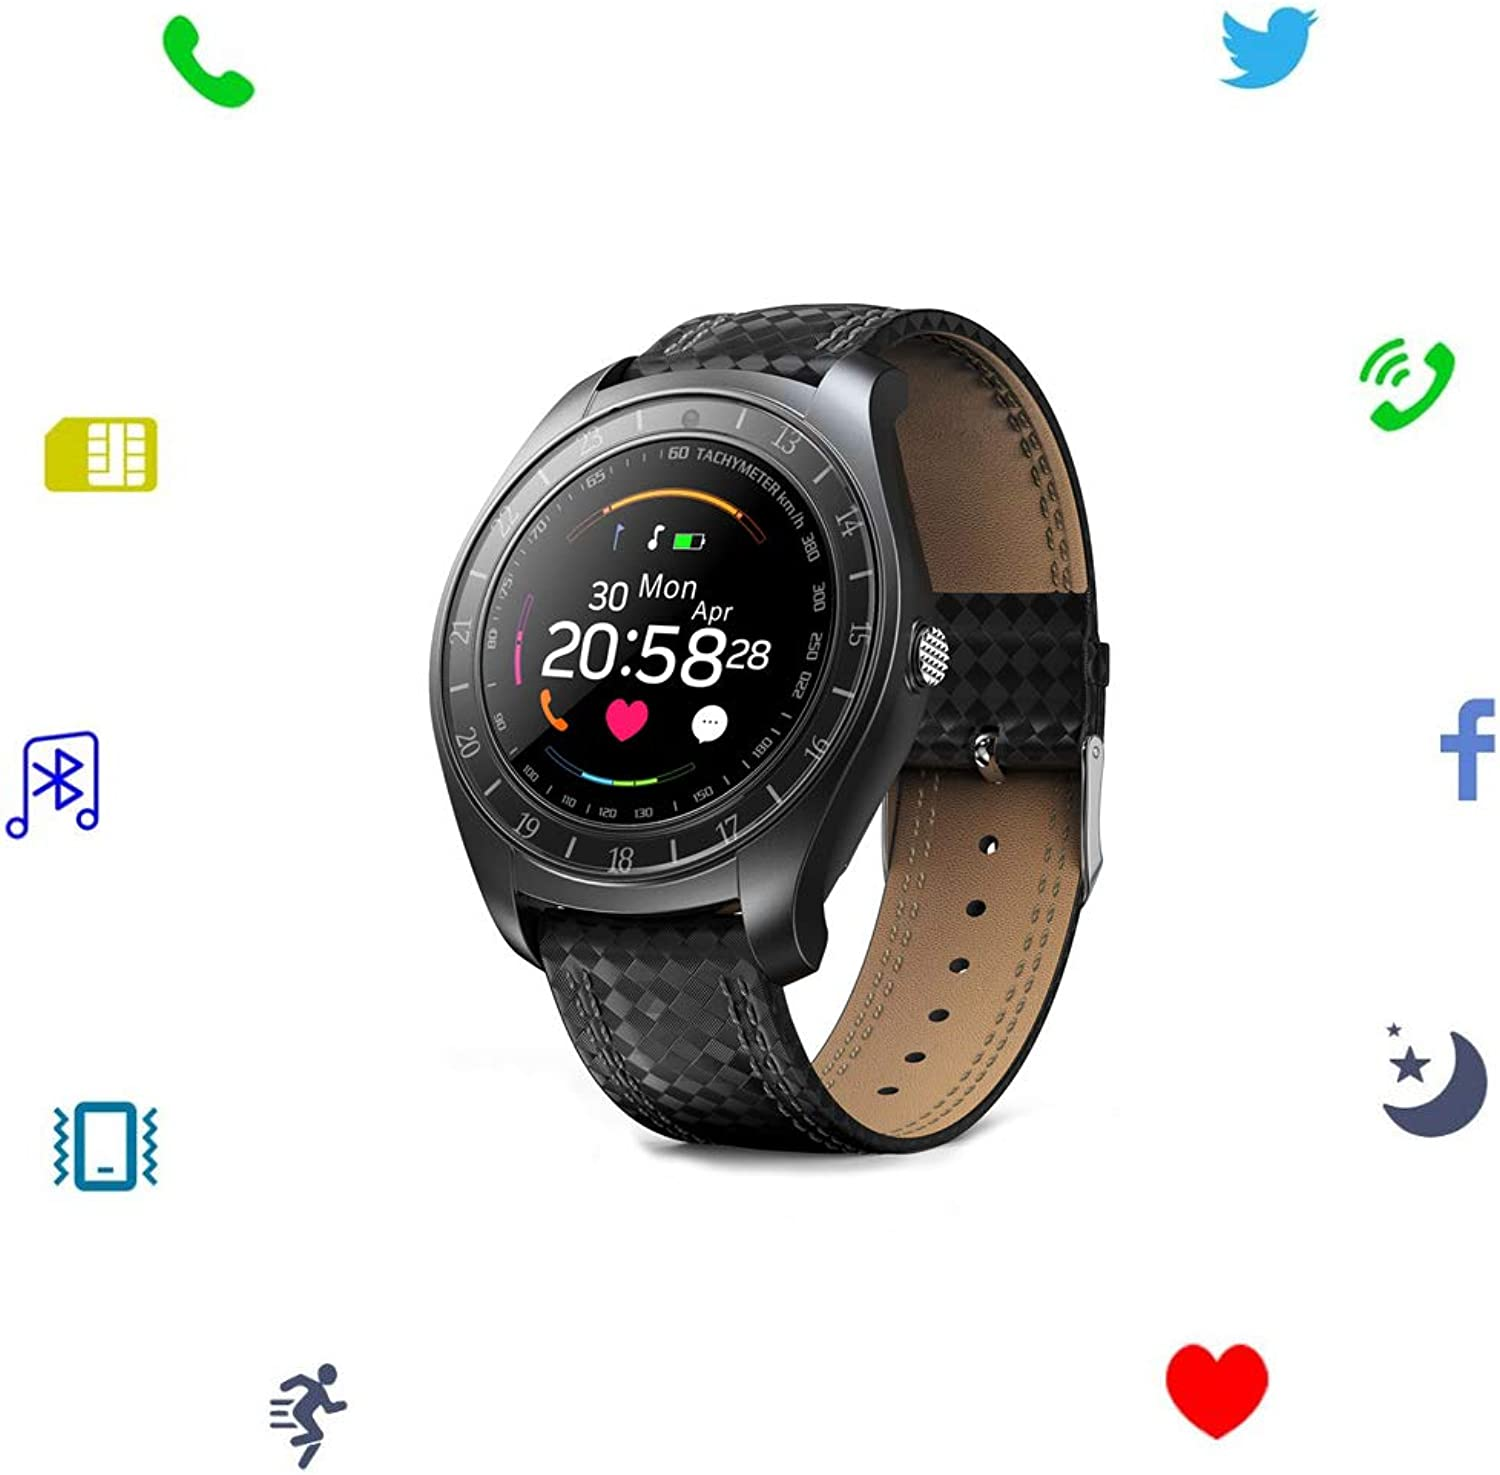 Sport Smart Watch Activity Tracker color Screen with Camera SIM Card Slot Fitness Sleep Tracker Calorie Counter Heart Rate Monitor for Android